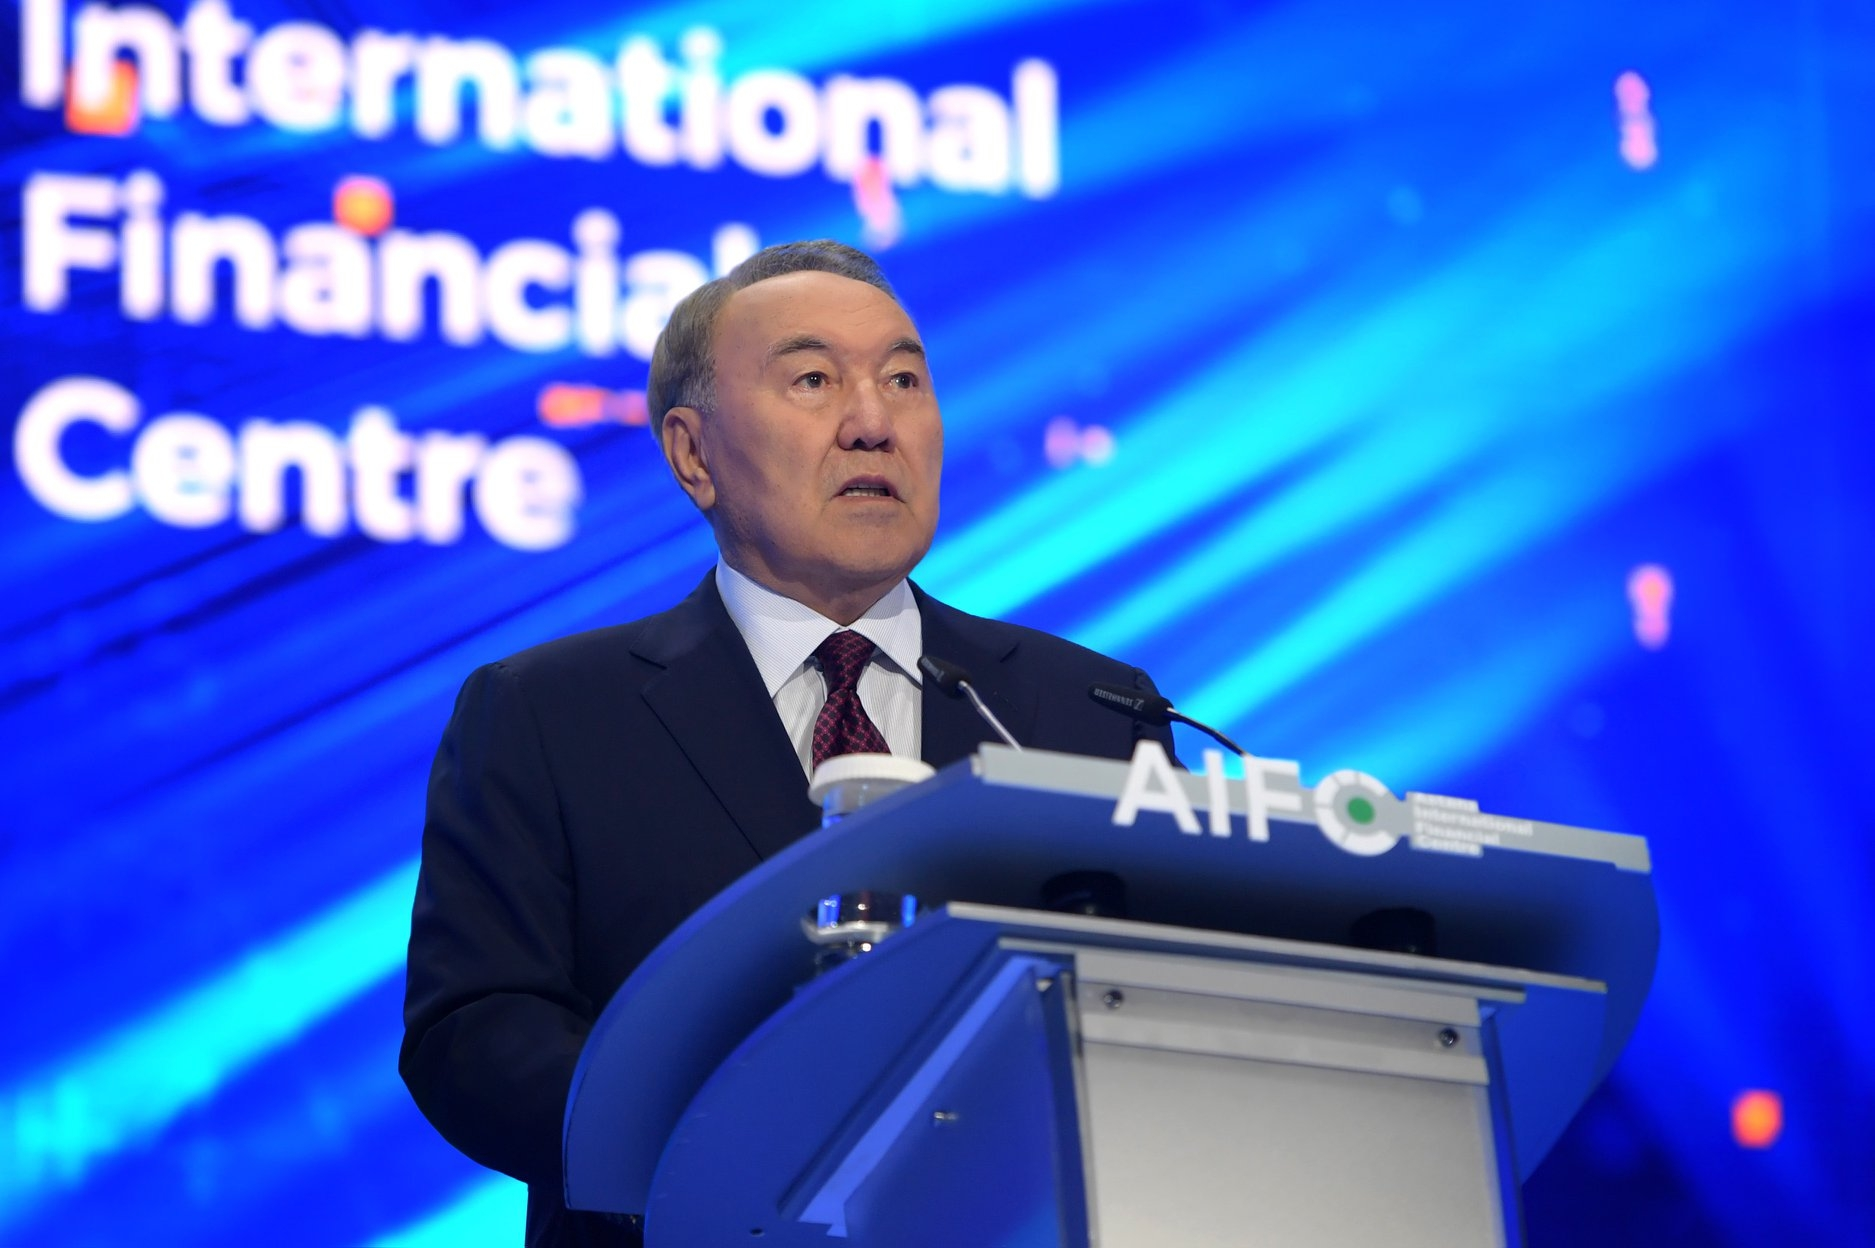 Nazarbayev at the AIFC opening last month. (Photo: Kazakhstan president's office)